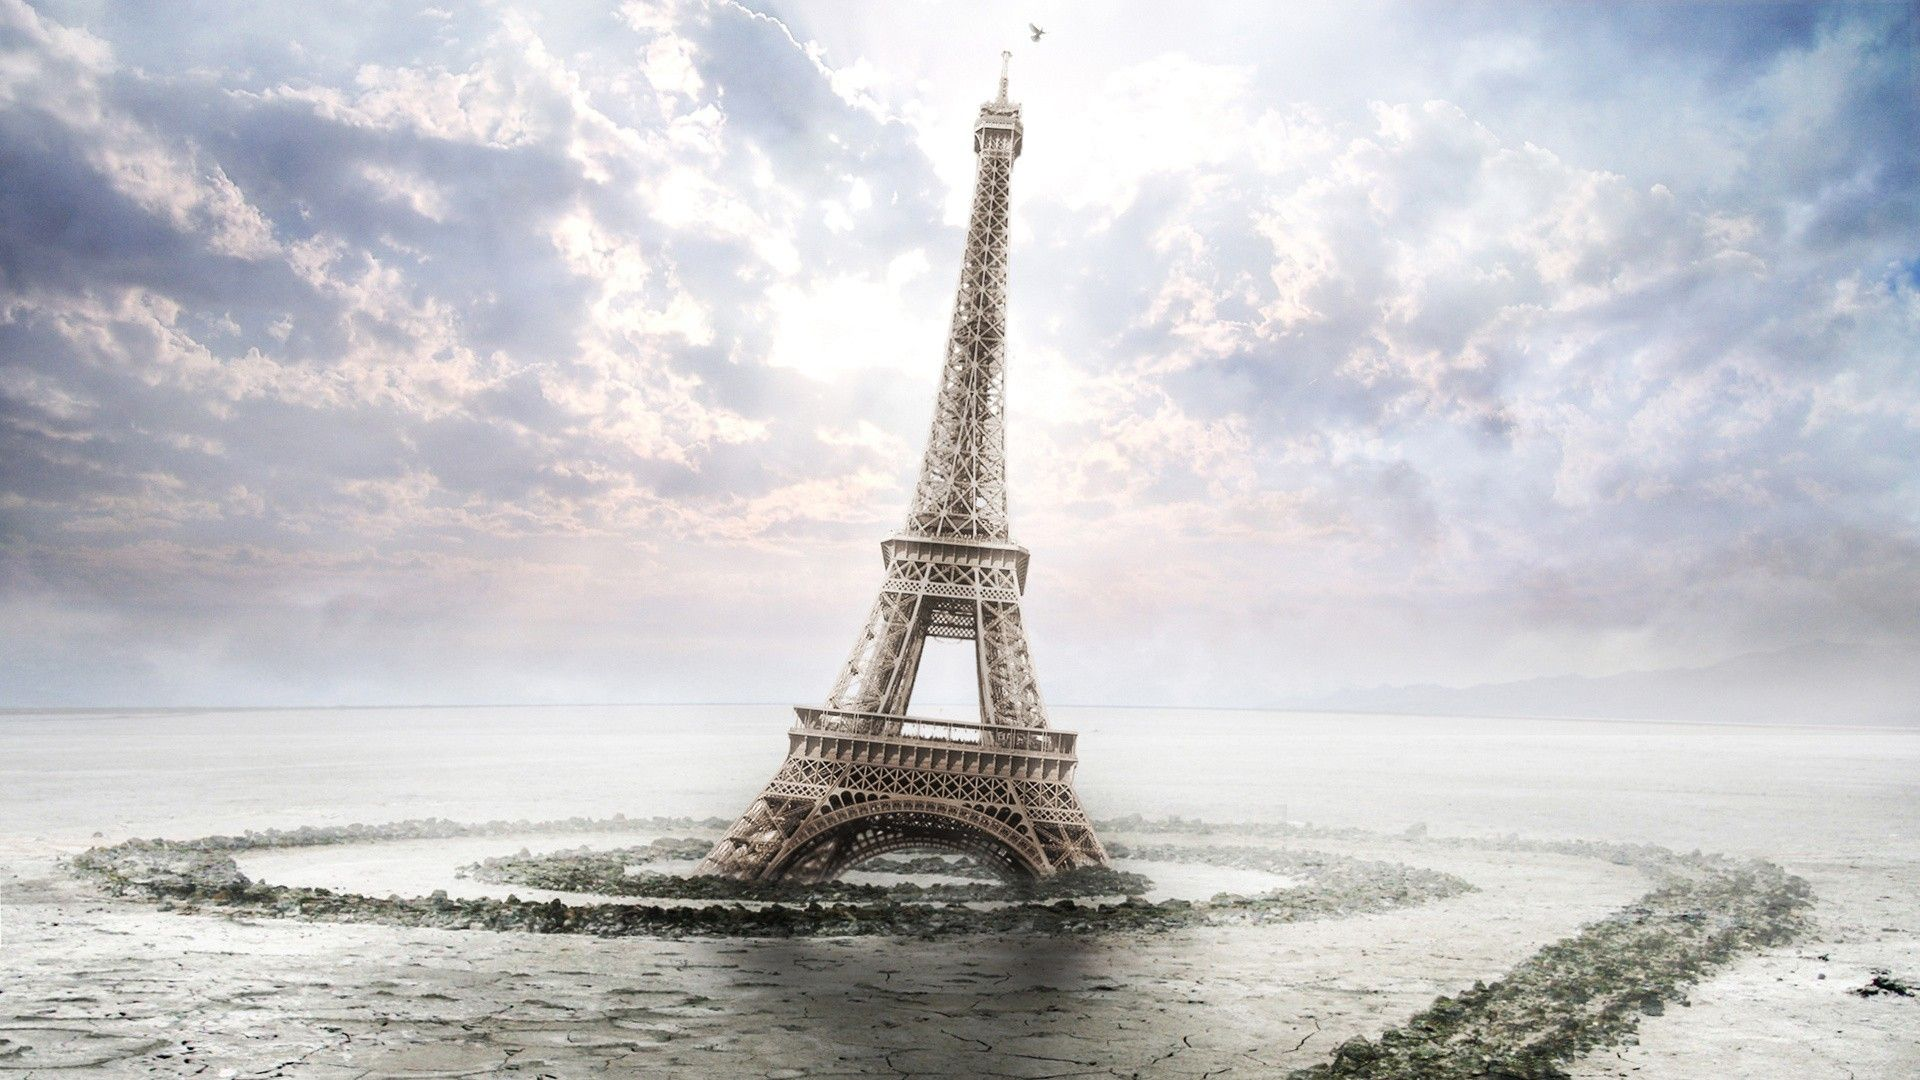 Sinking eiffel tower